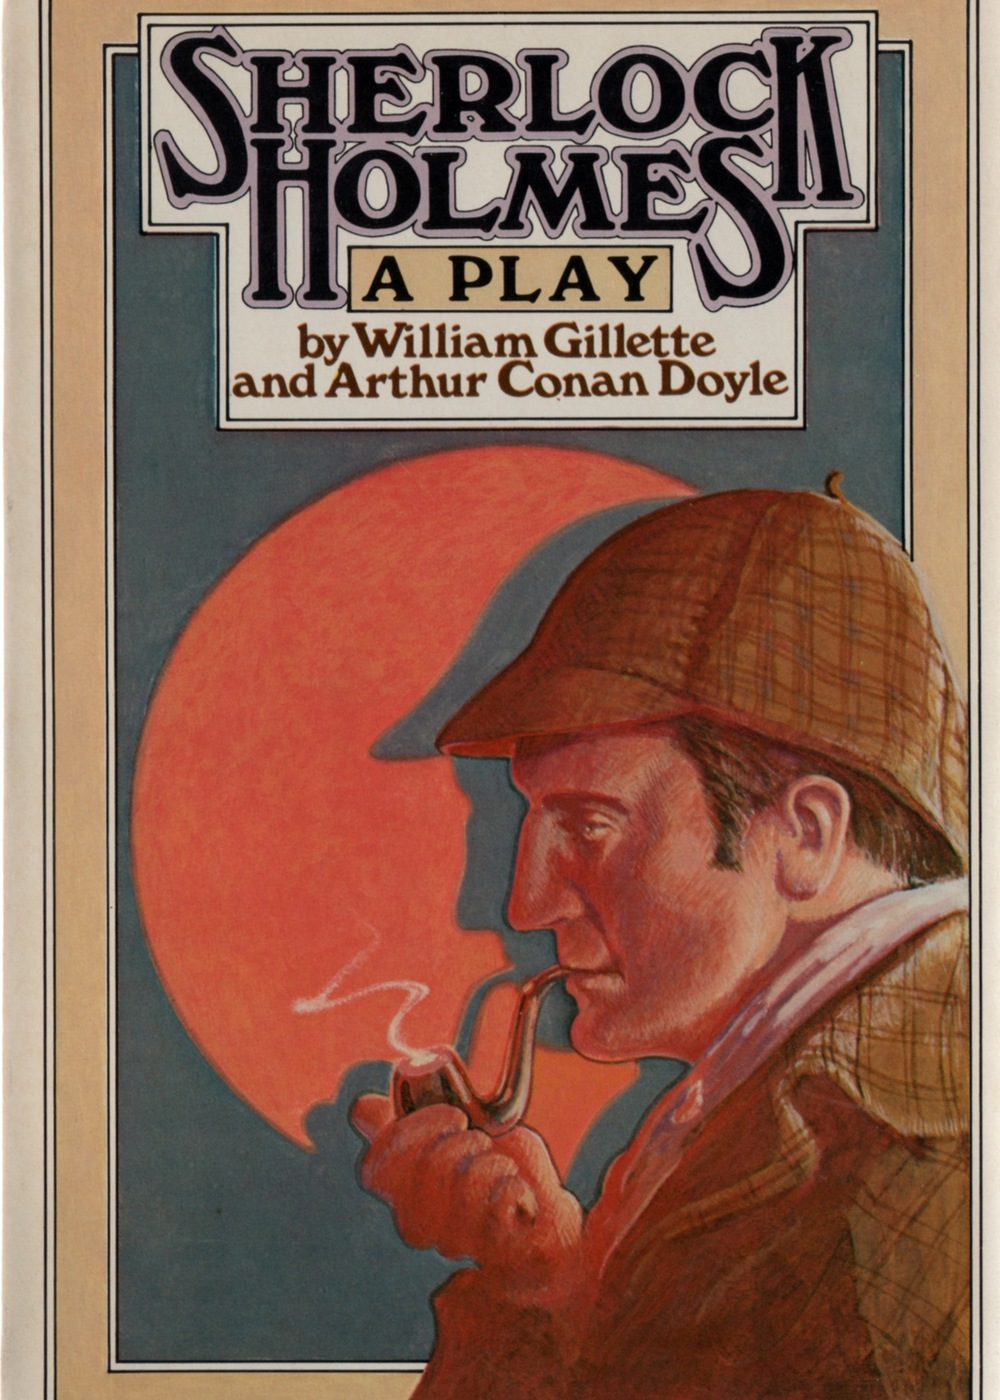 The 1976 Doubleday edition has the text of the play, but lacks all of the other special material of the 1935 edition.